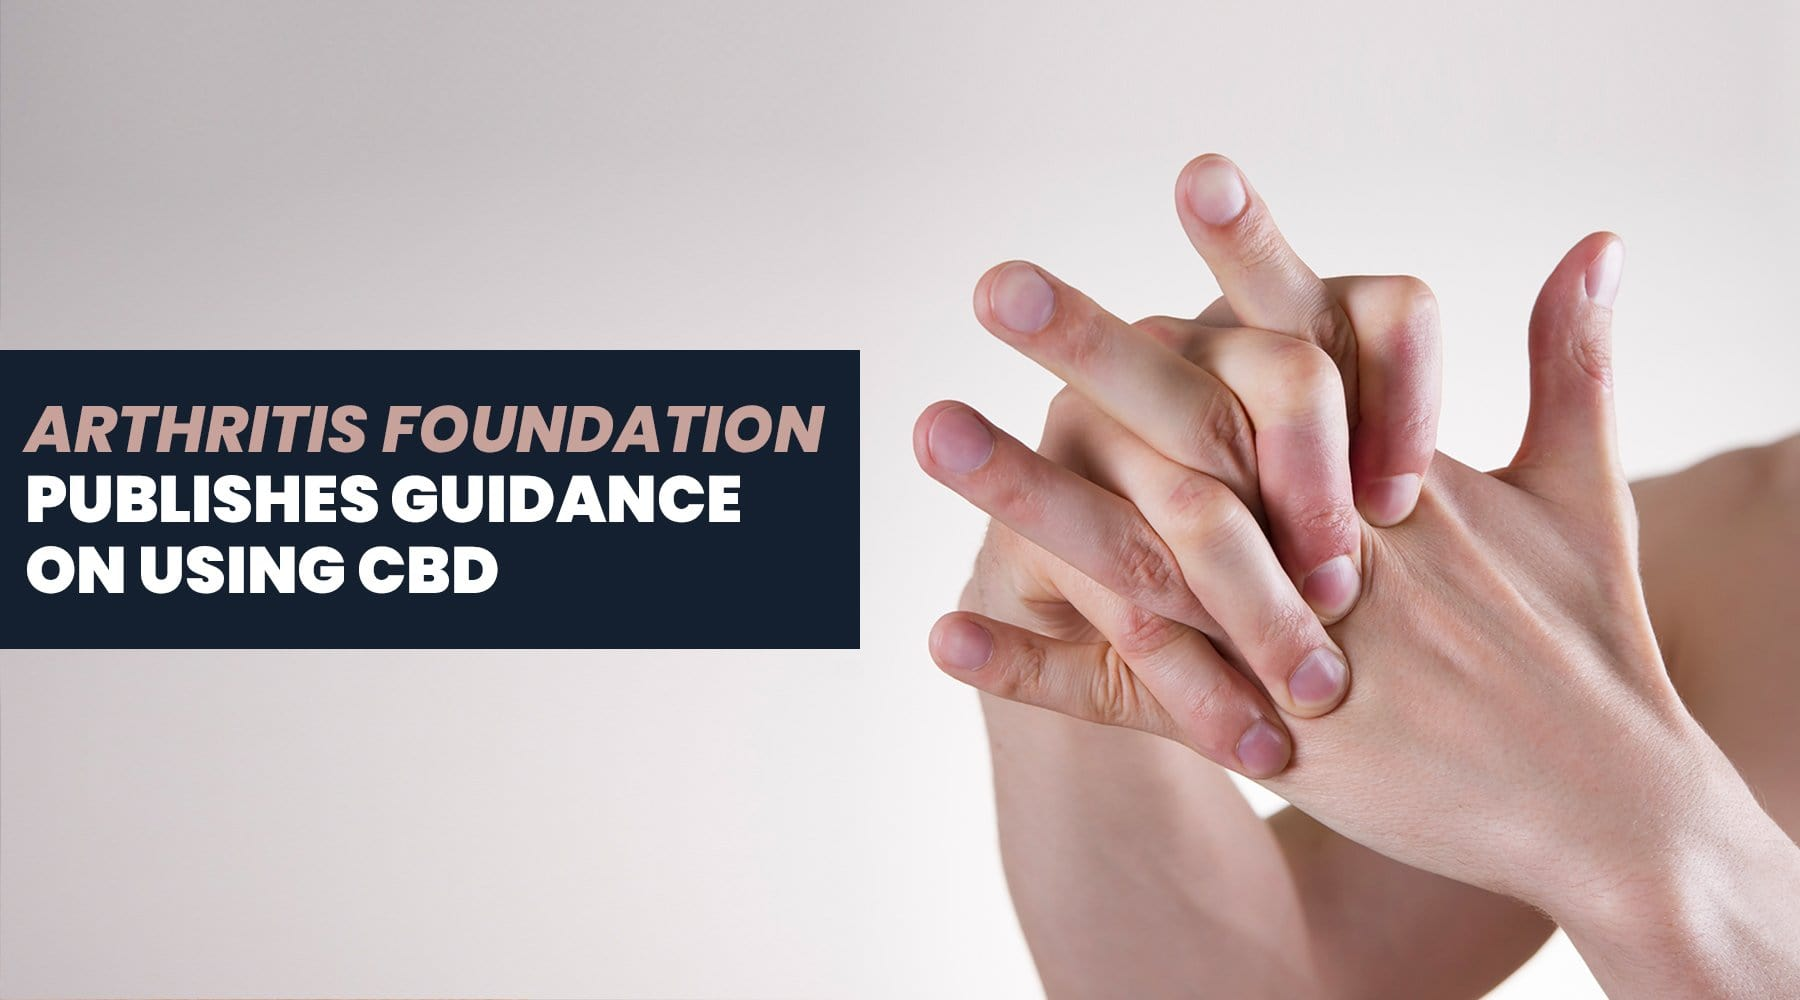 The First Ever Medical Guidance on Using CBD for Arthritis is Available Now!